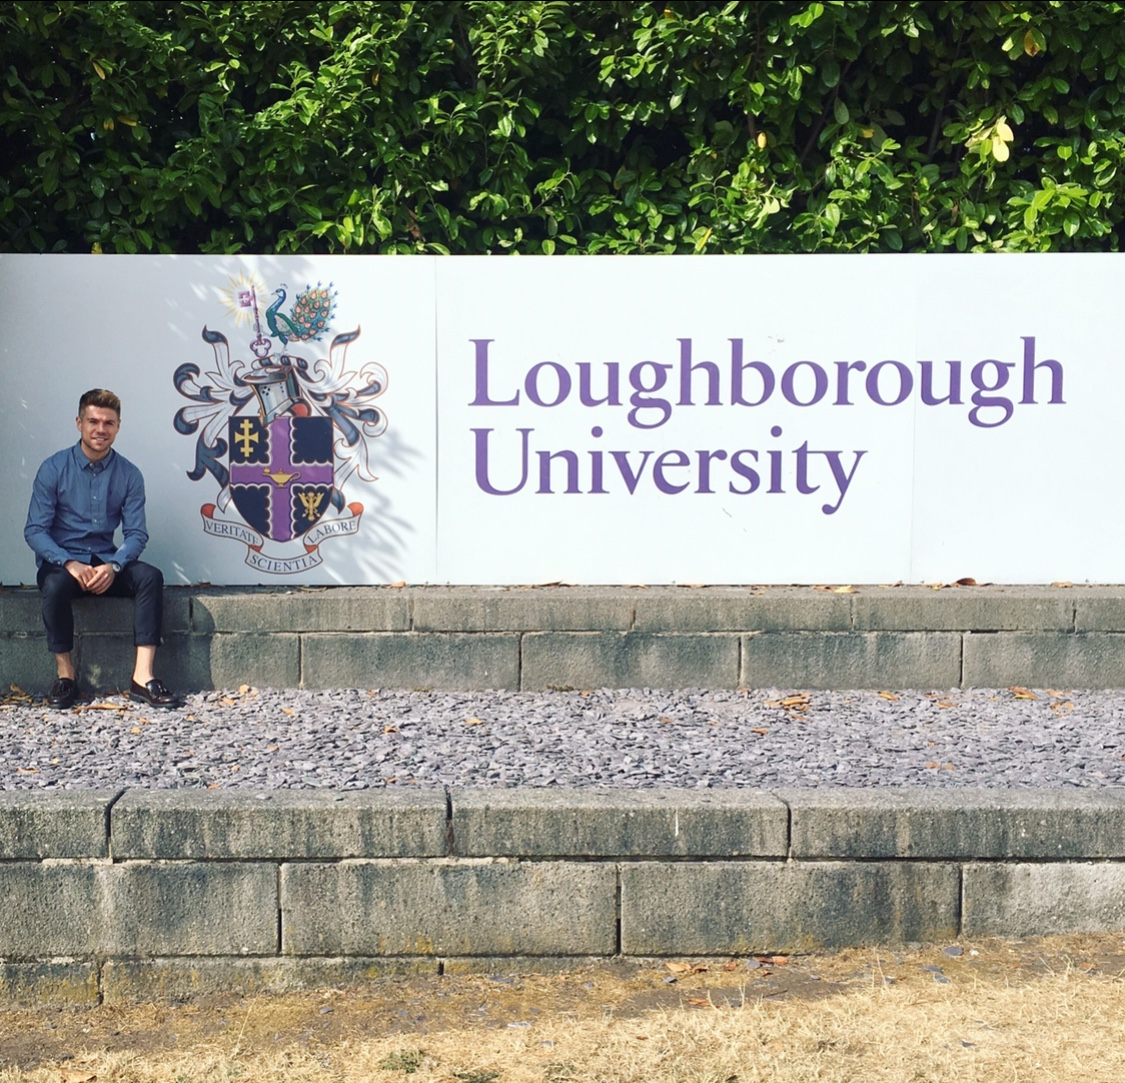 LoughboroughUni.jpg